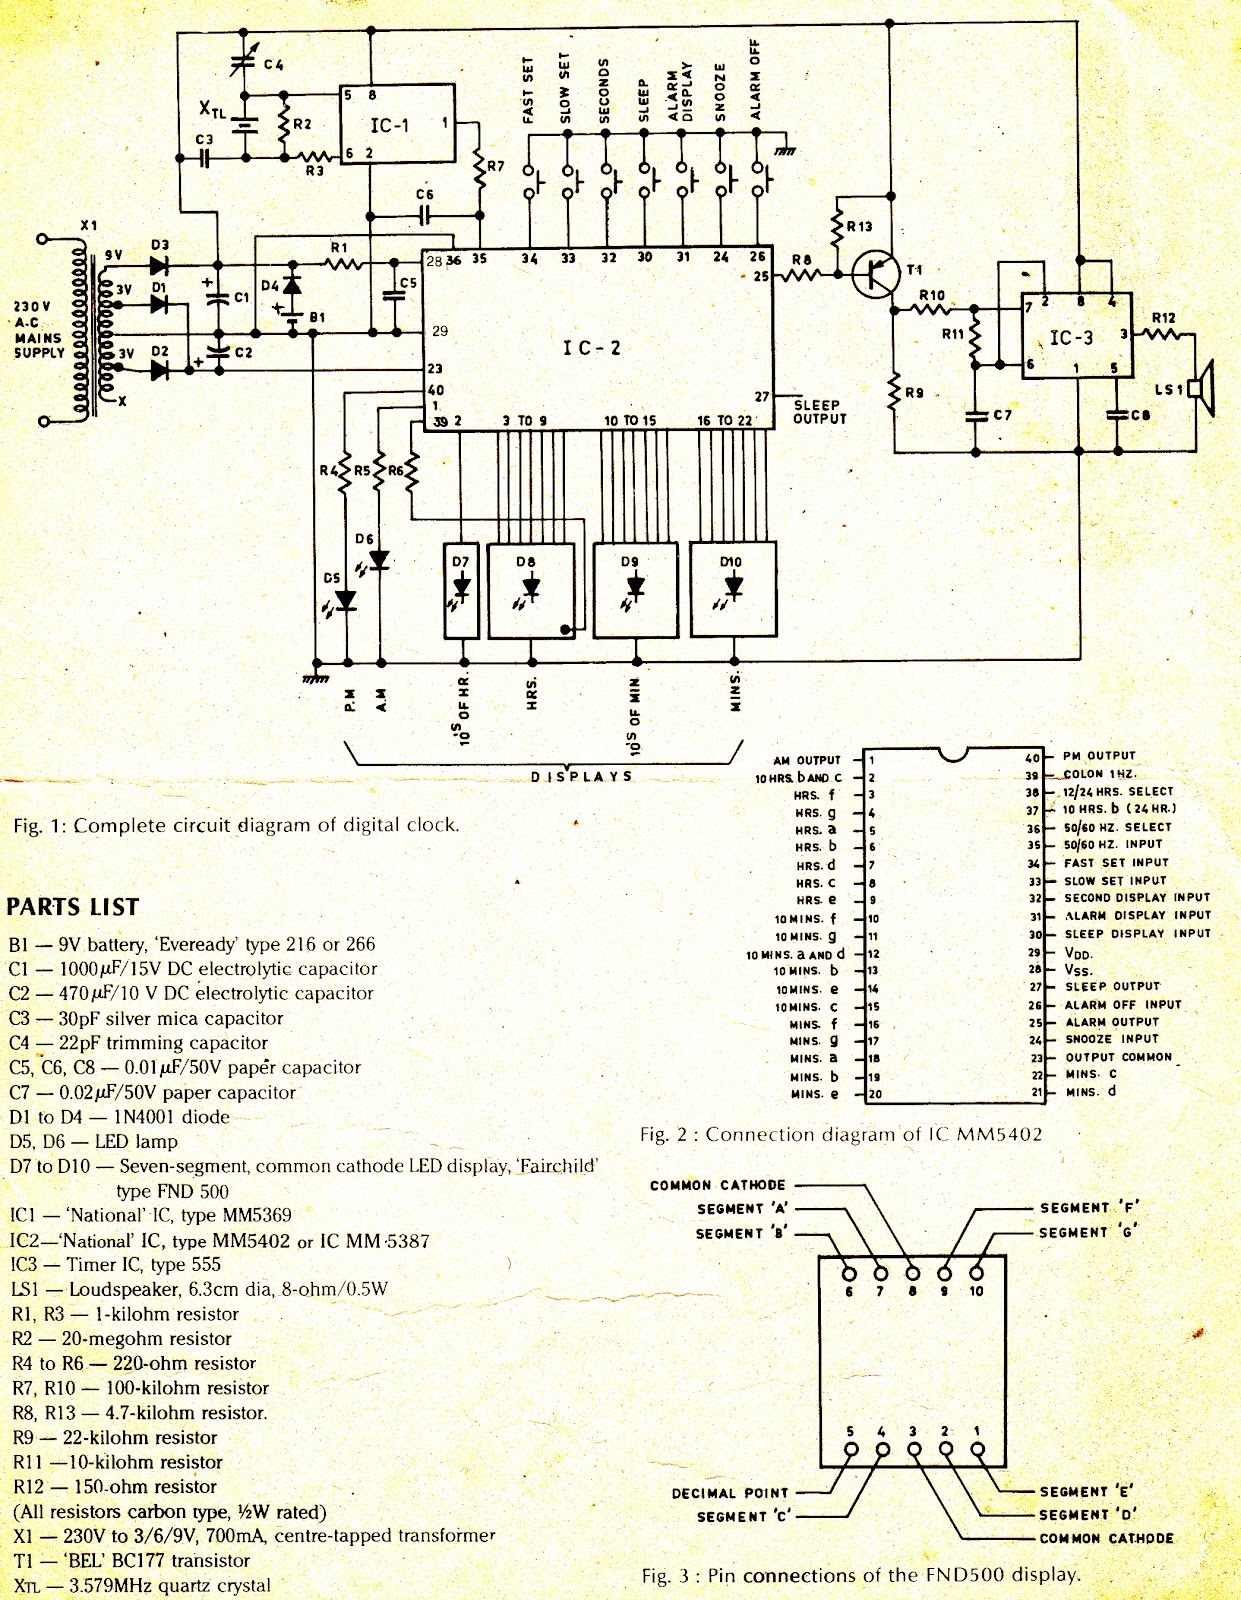 Digital Clock - schematic